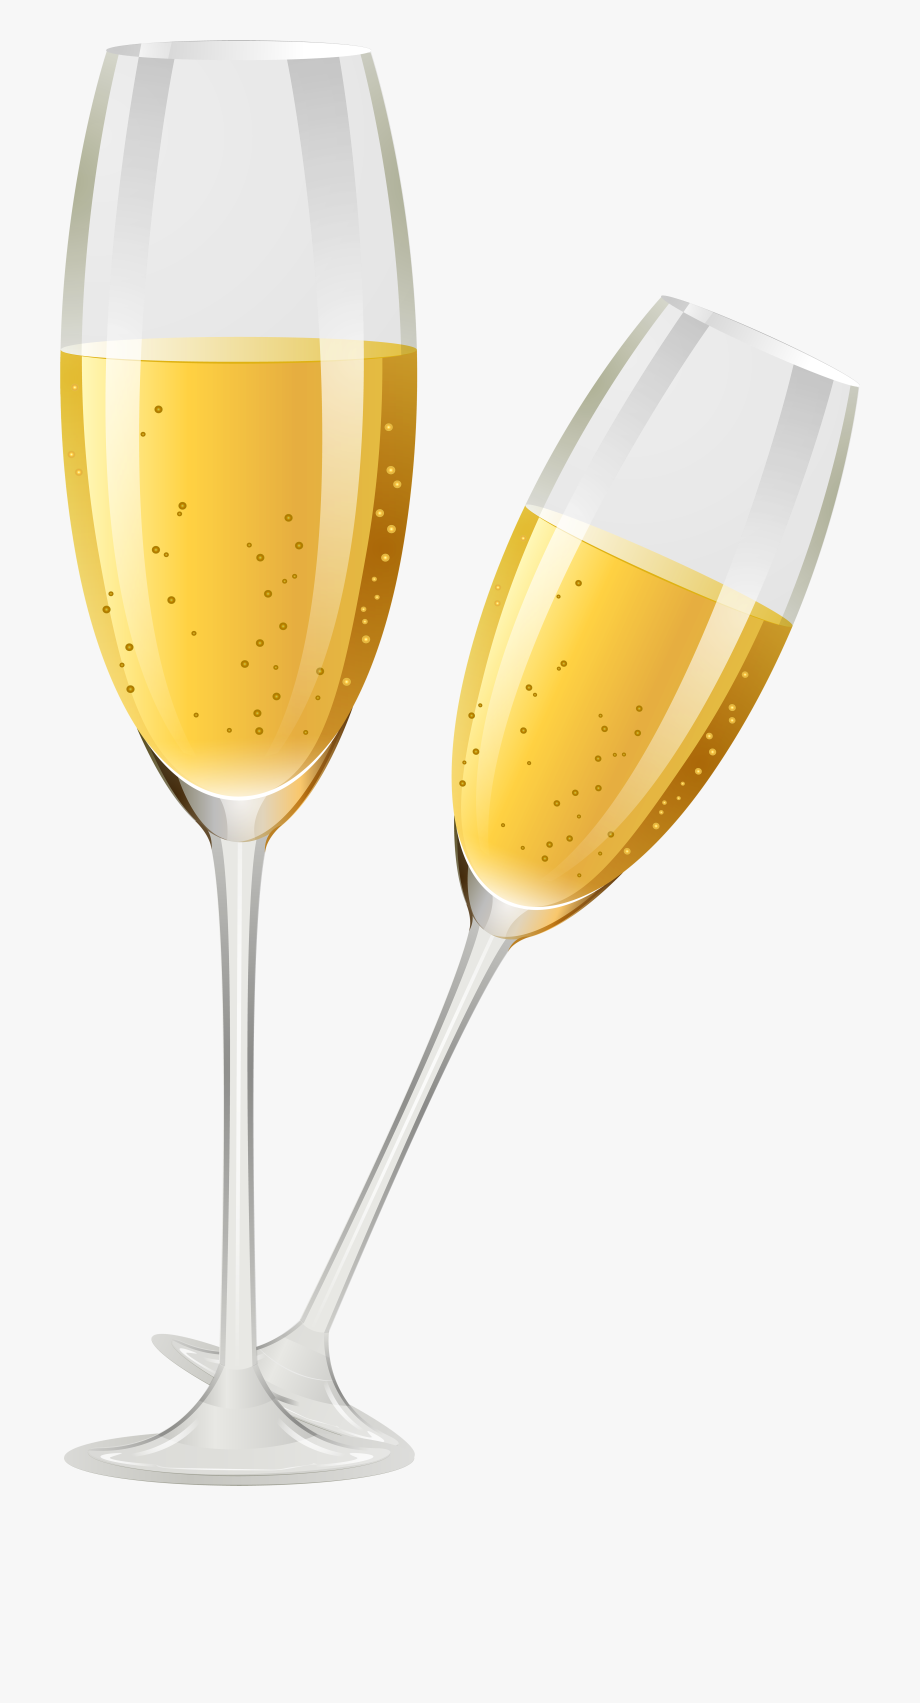 Champagne glass clipart png png black and white stock Banner Black And White Gold Champagne Glass Clipart - Champagne ... png black and white stock